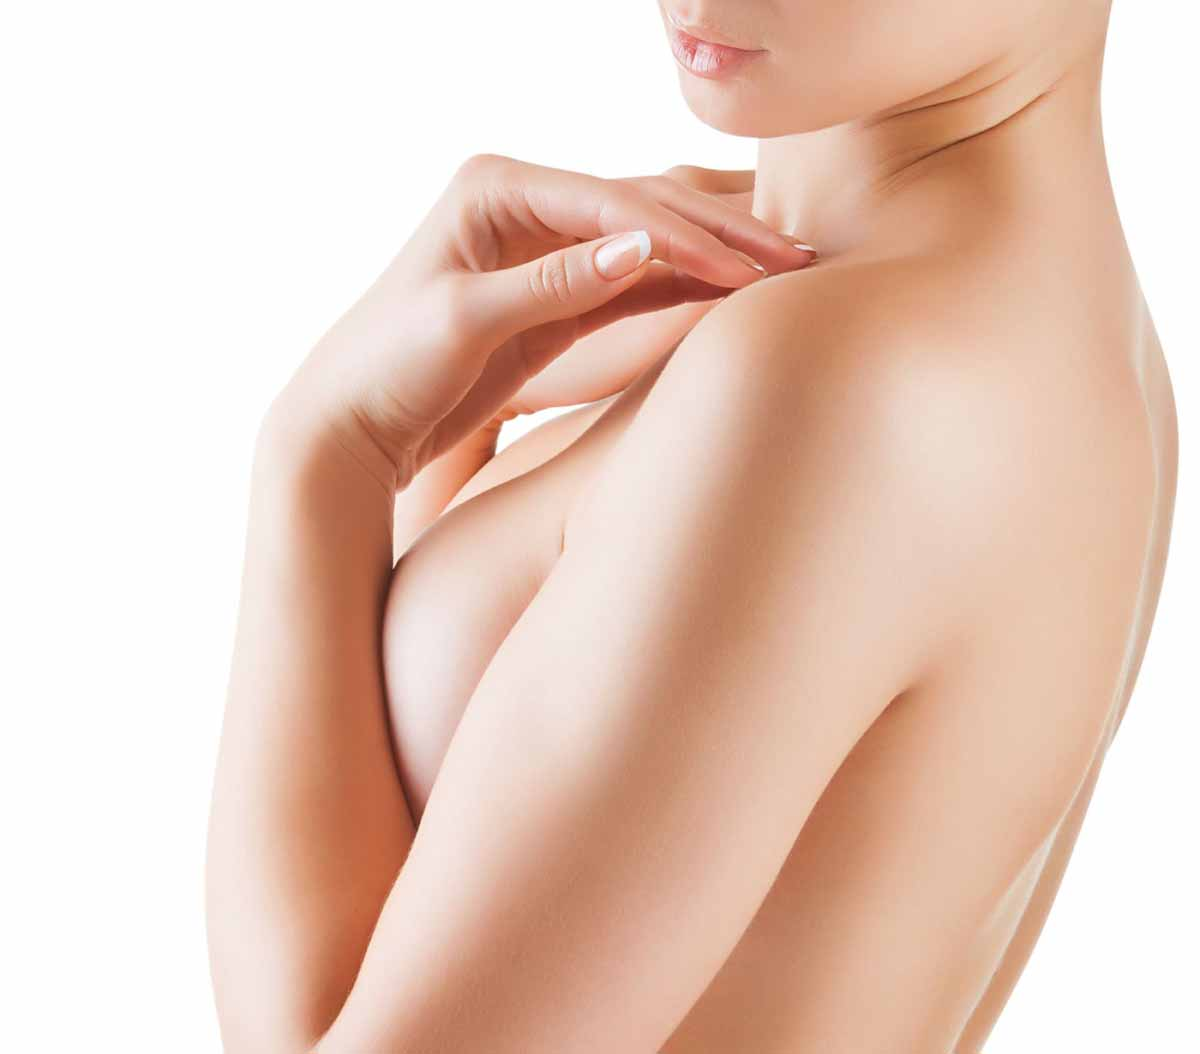 Image of model depicting plastic surgery breast procedures.